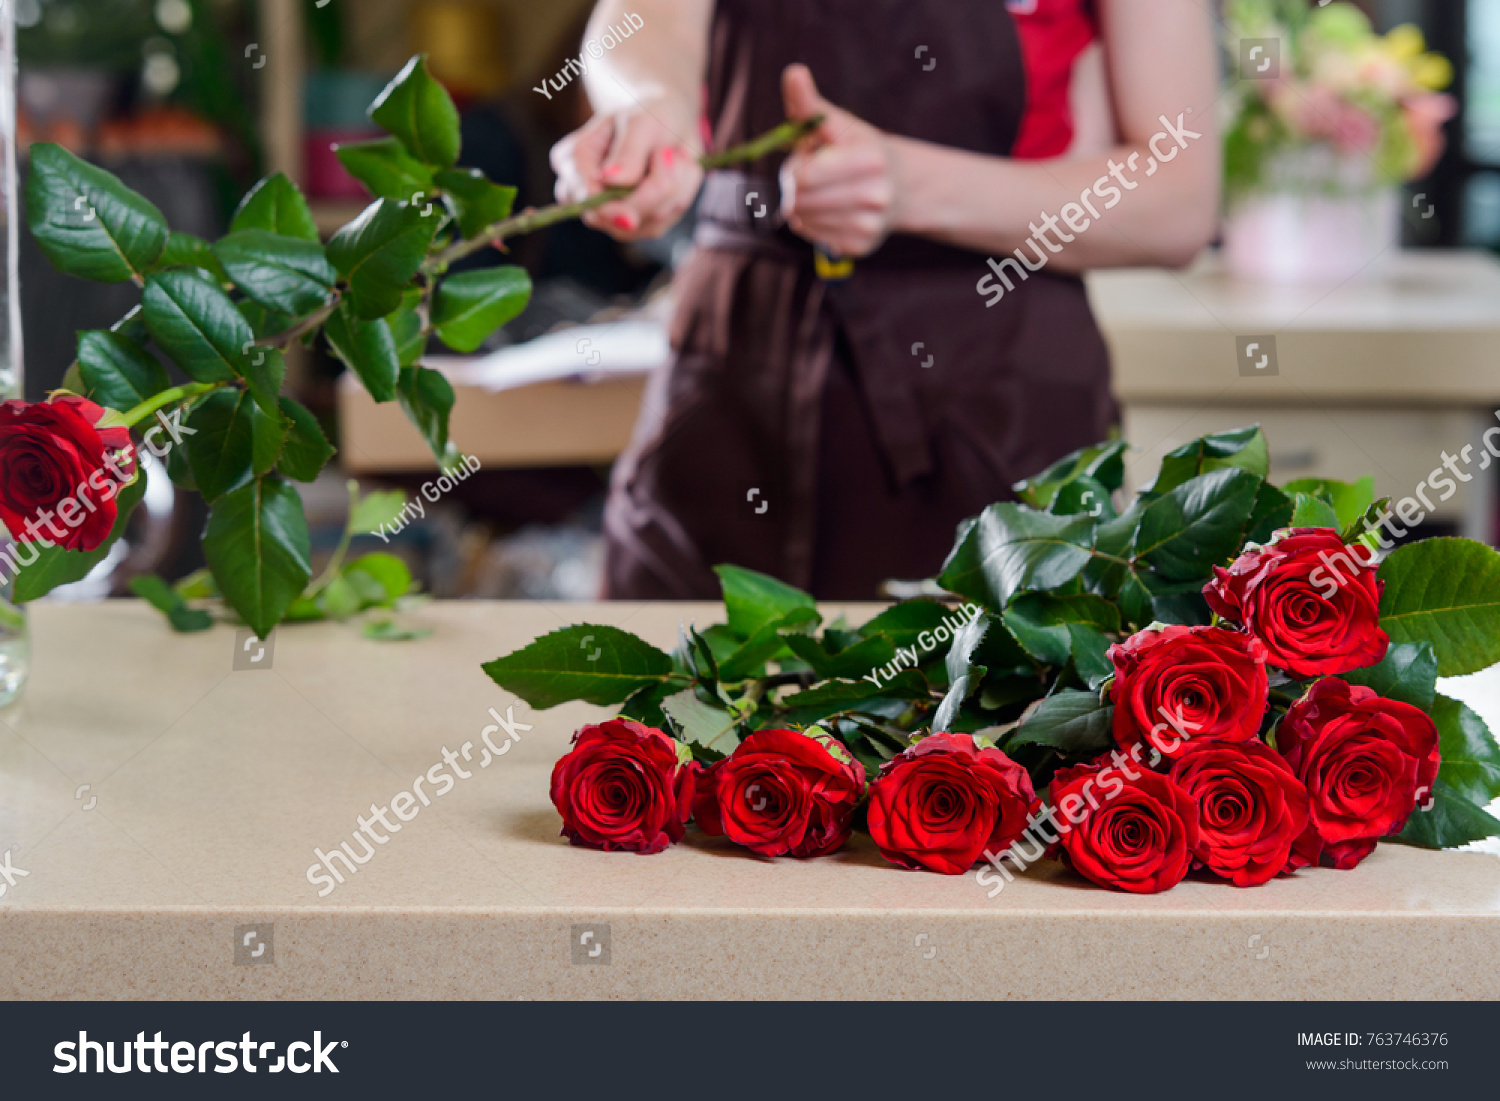 Florist making bouquet red roses woman stock photo edit now florist making a bouquet of red roses woman giving a cut to stems and collecting izmirmasajfo